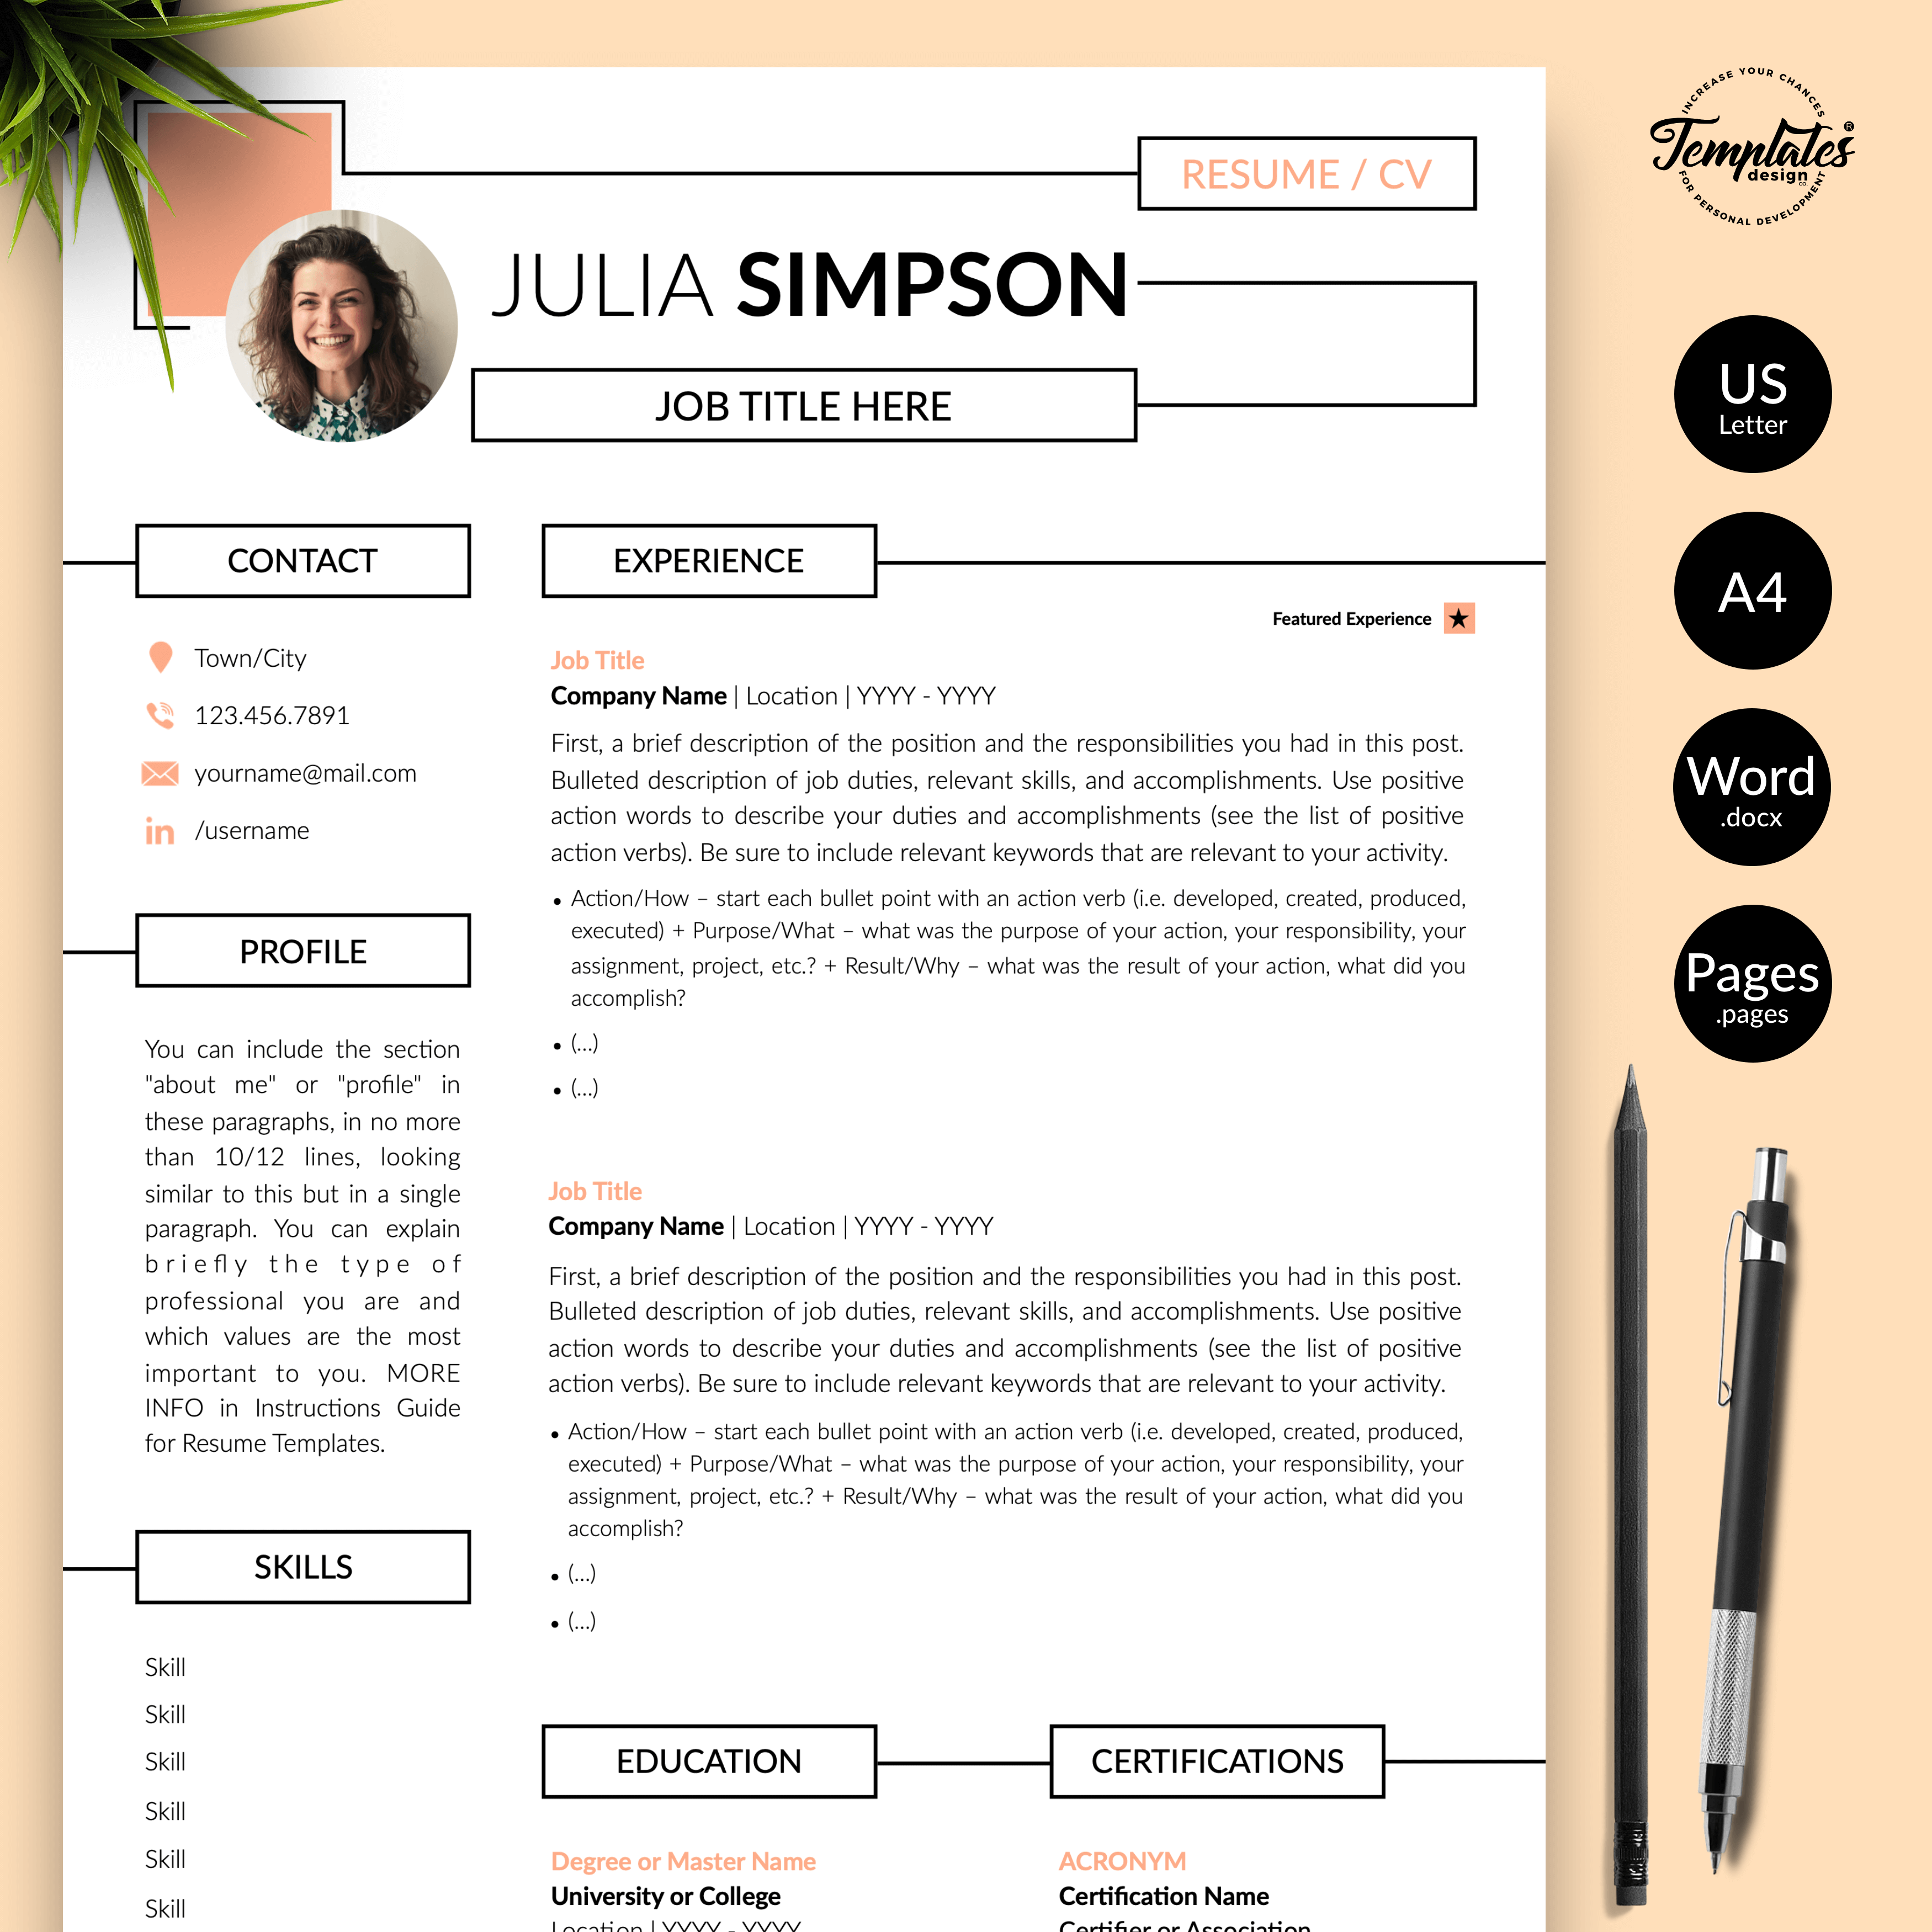 Creative Resume for Engineers - Julia Simpson 01 - Presentation